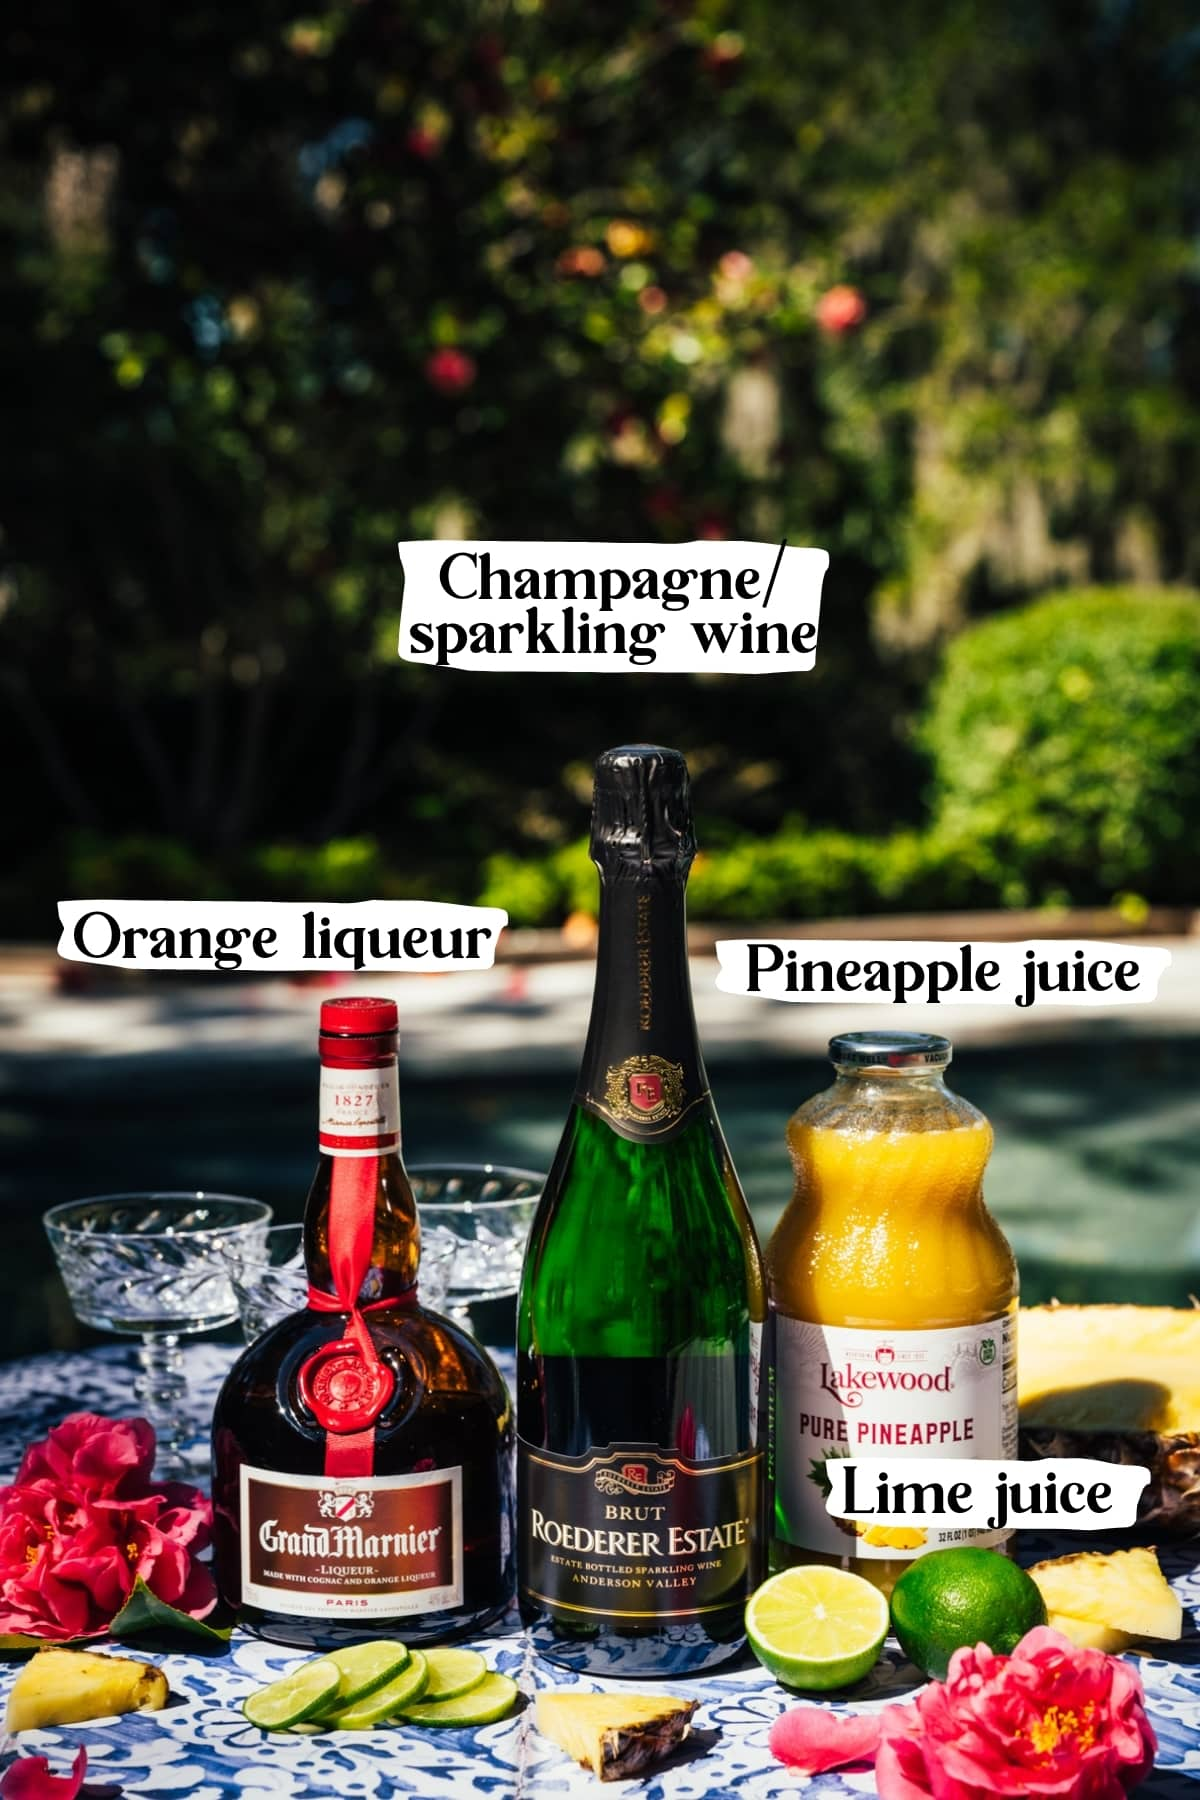 side view of ingredients for pineapple mimosas, including sparkling wine, pineapple juice, grand marnier and limes.